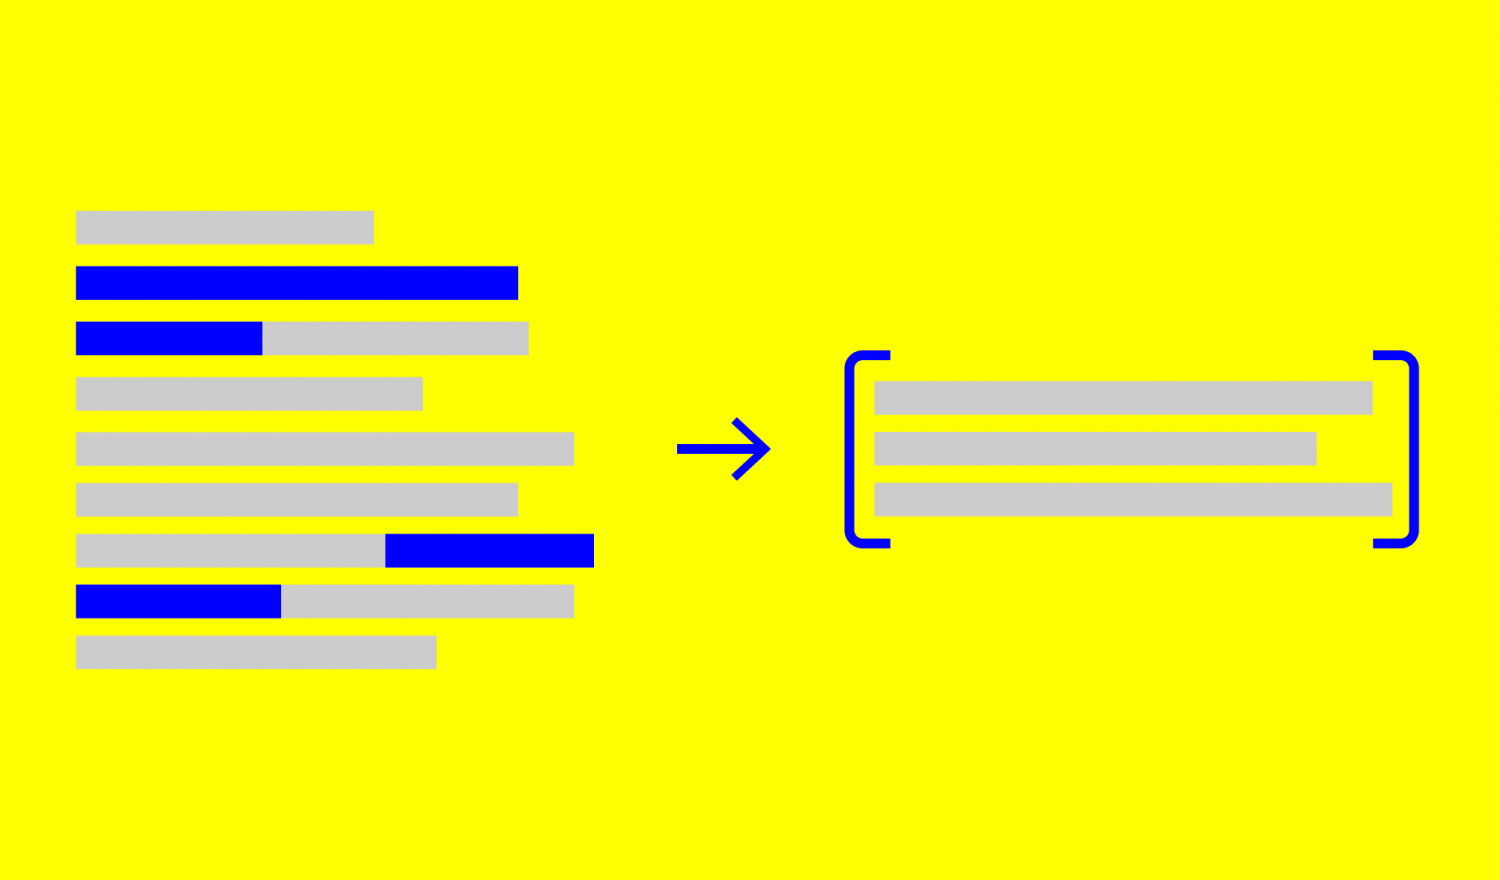 Stylized highlighted text being summarized in a bracket.